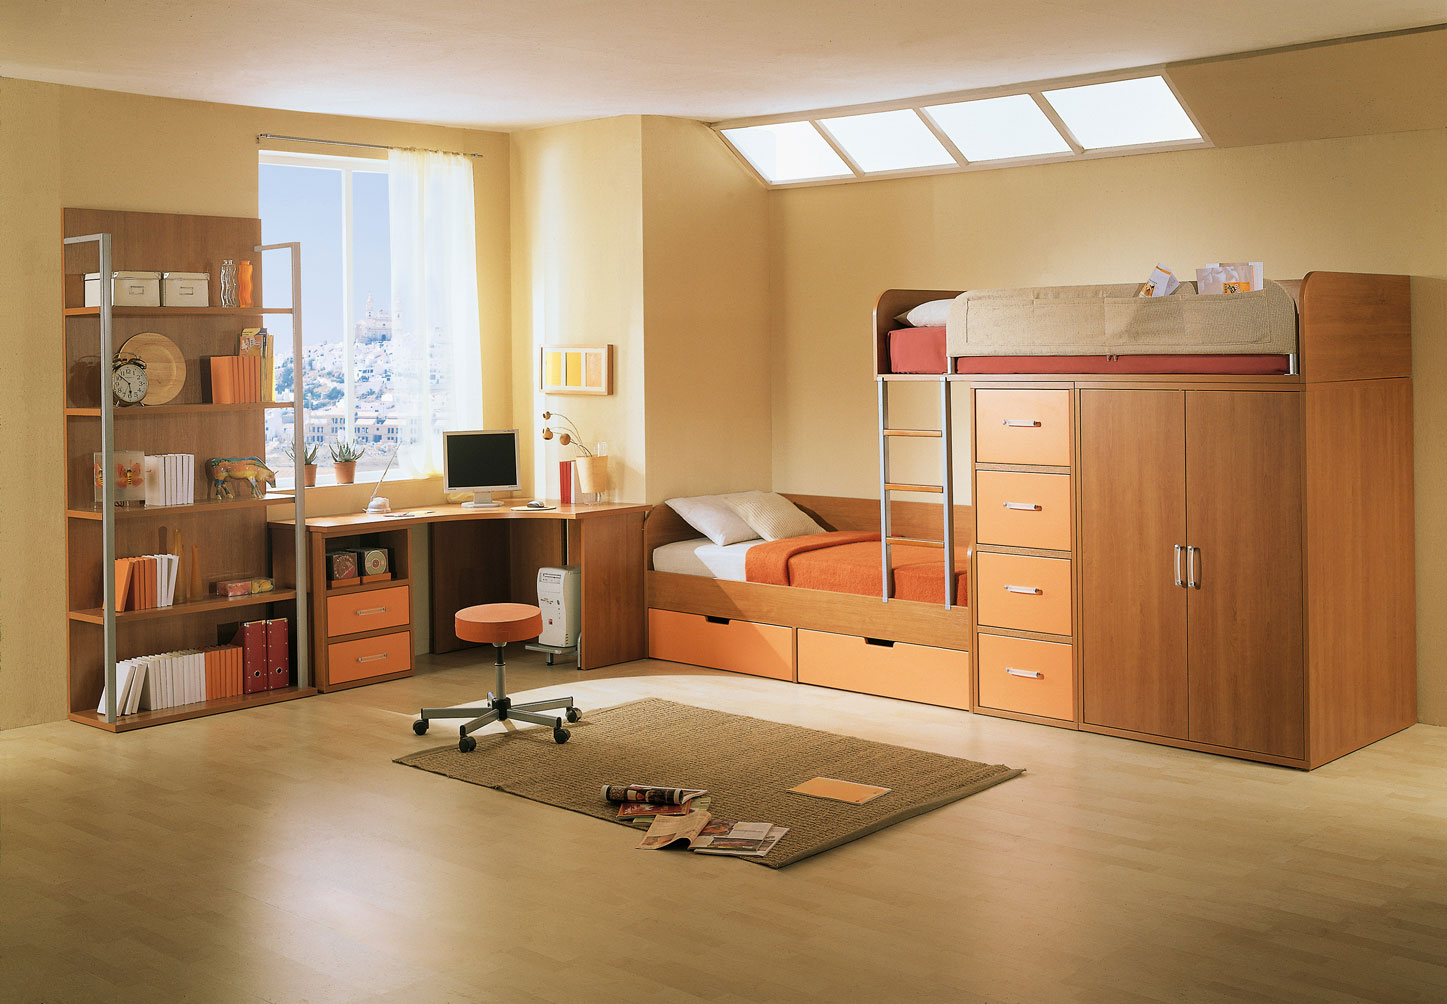 Amazing Home Rooms Kid S Rooms From Russian Maker Akossta